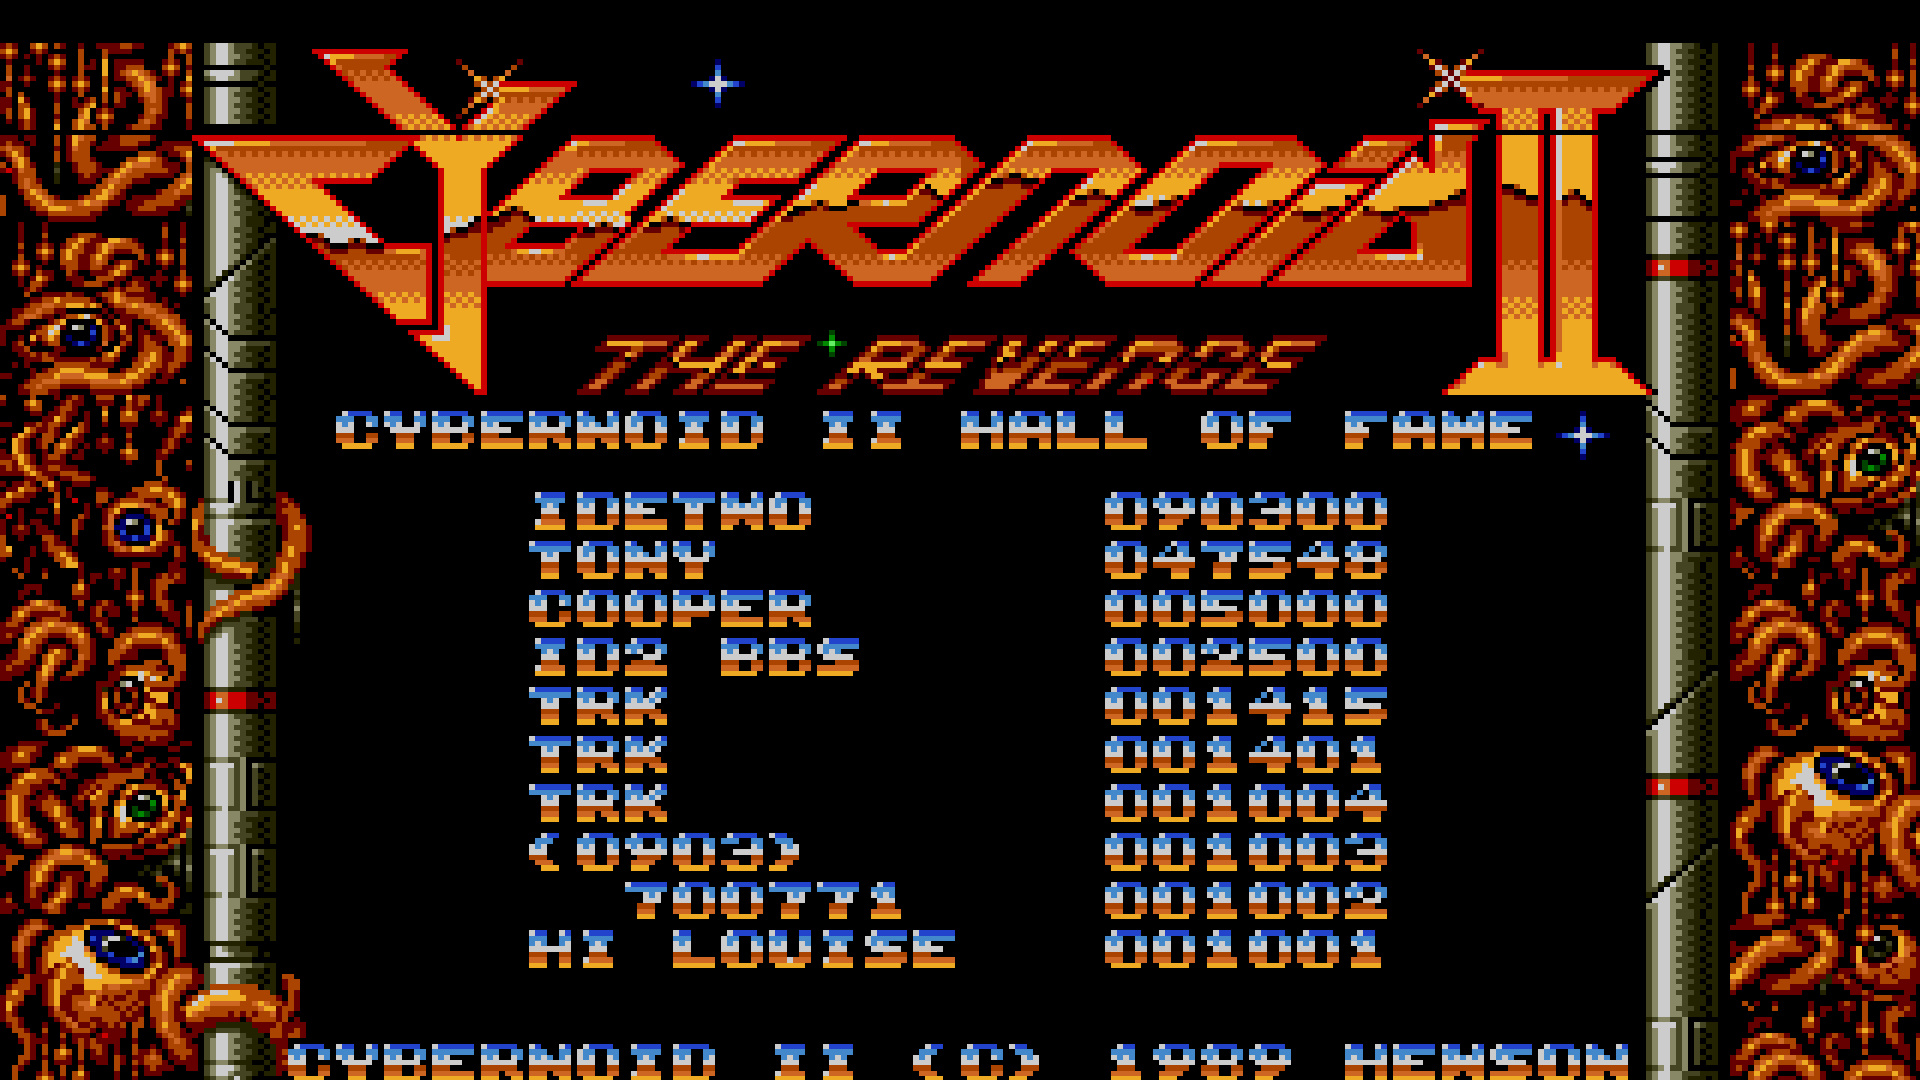 TheTrickster: Cybernoid 2 (Amiga Emulated) 1,415 points on 2015-07-25 00:04:16